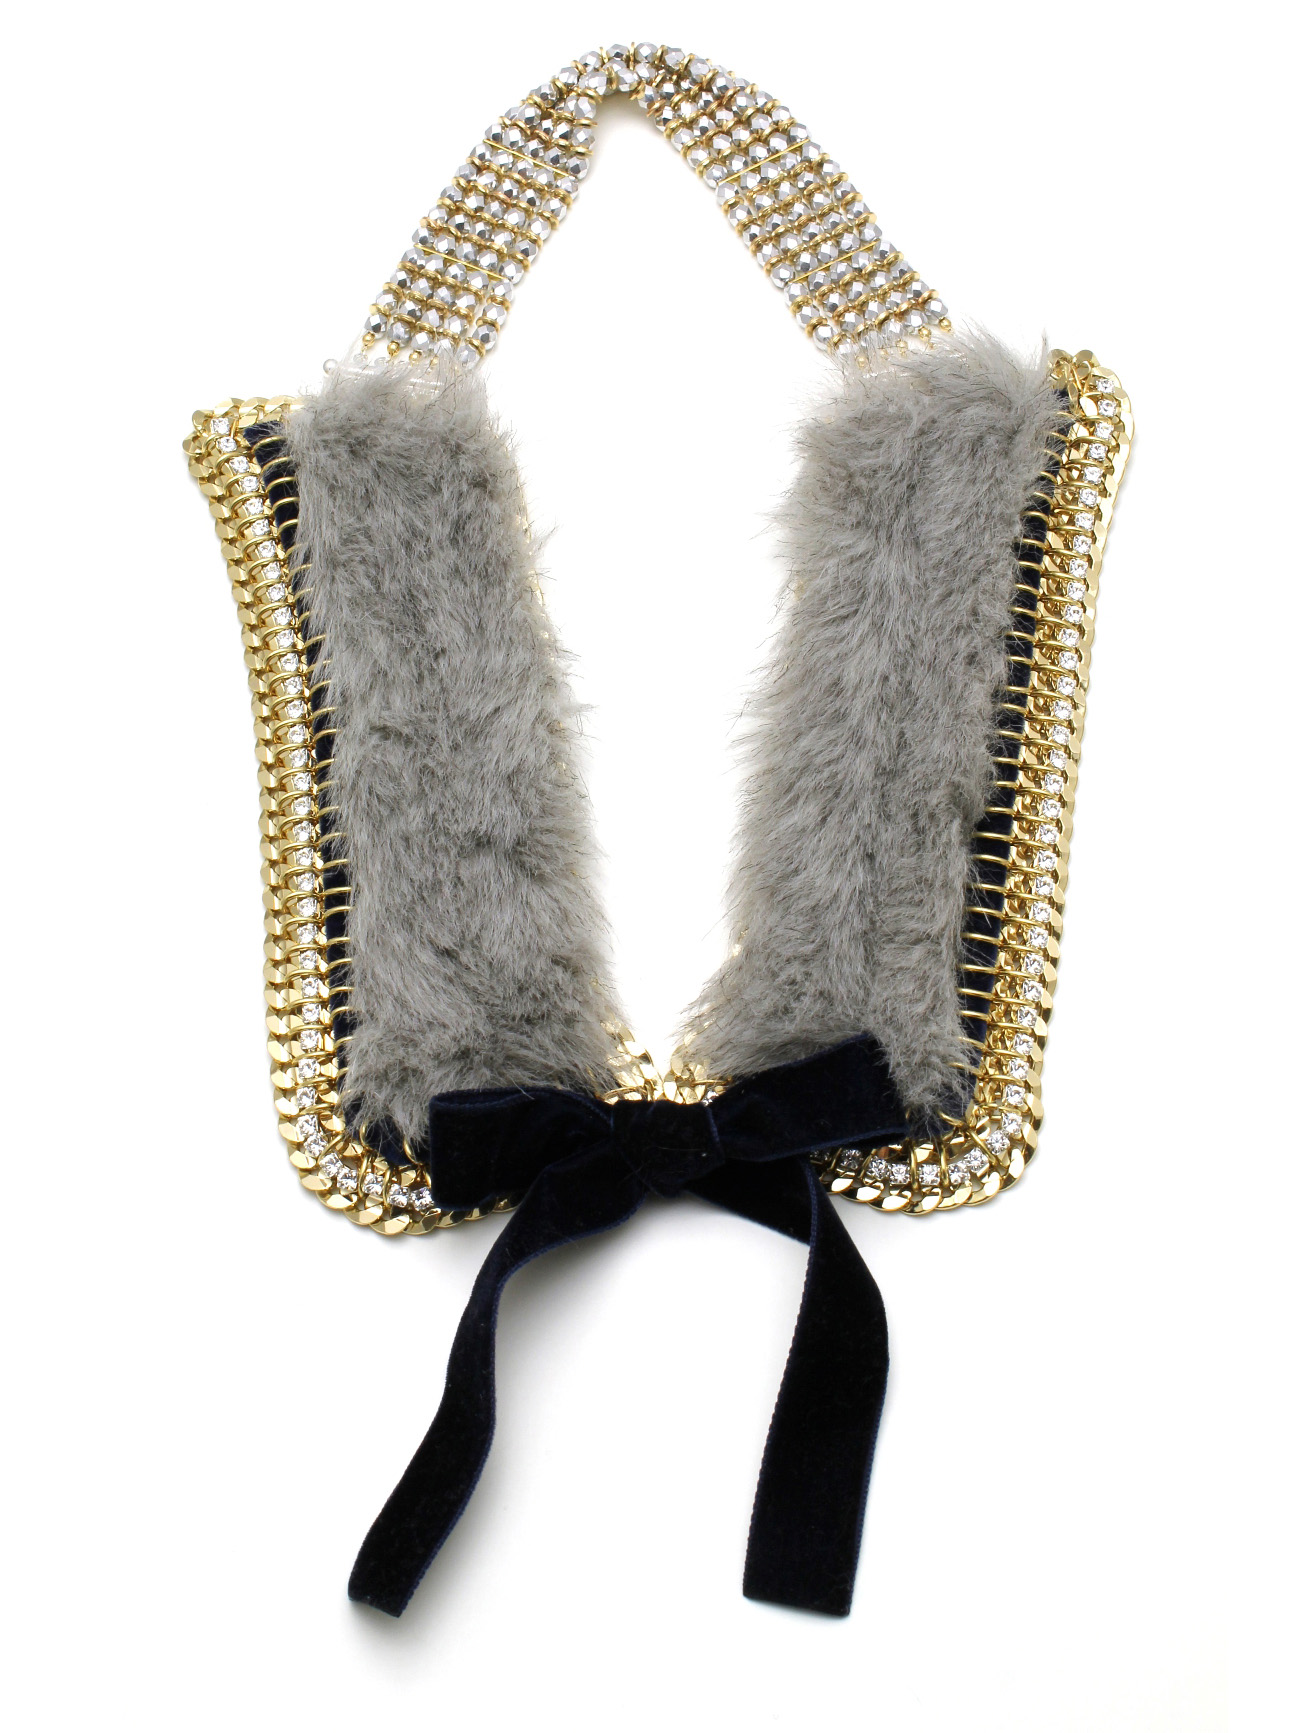 041 - Fur & Crystal Collar.jpg